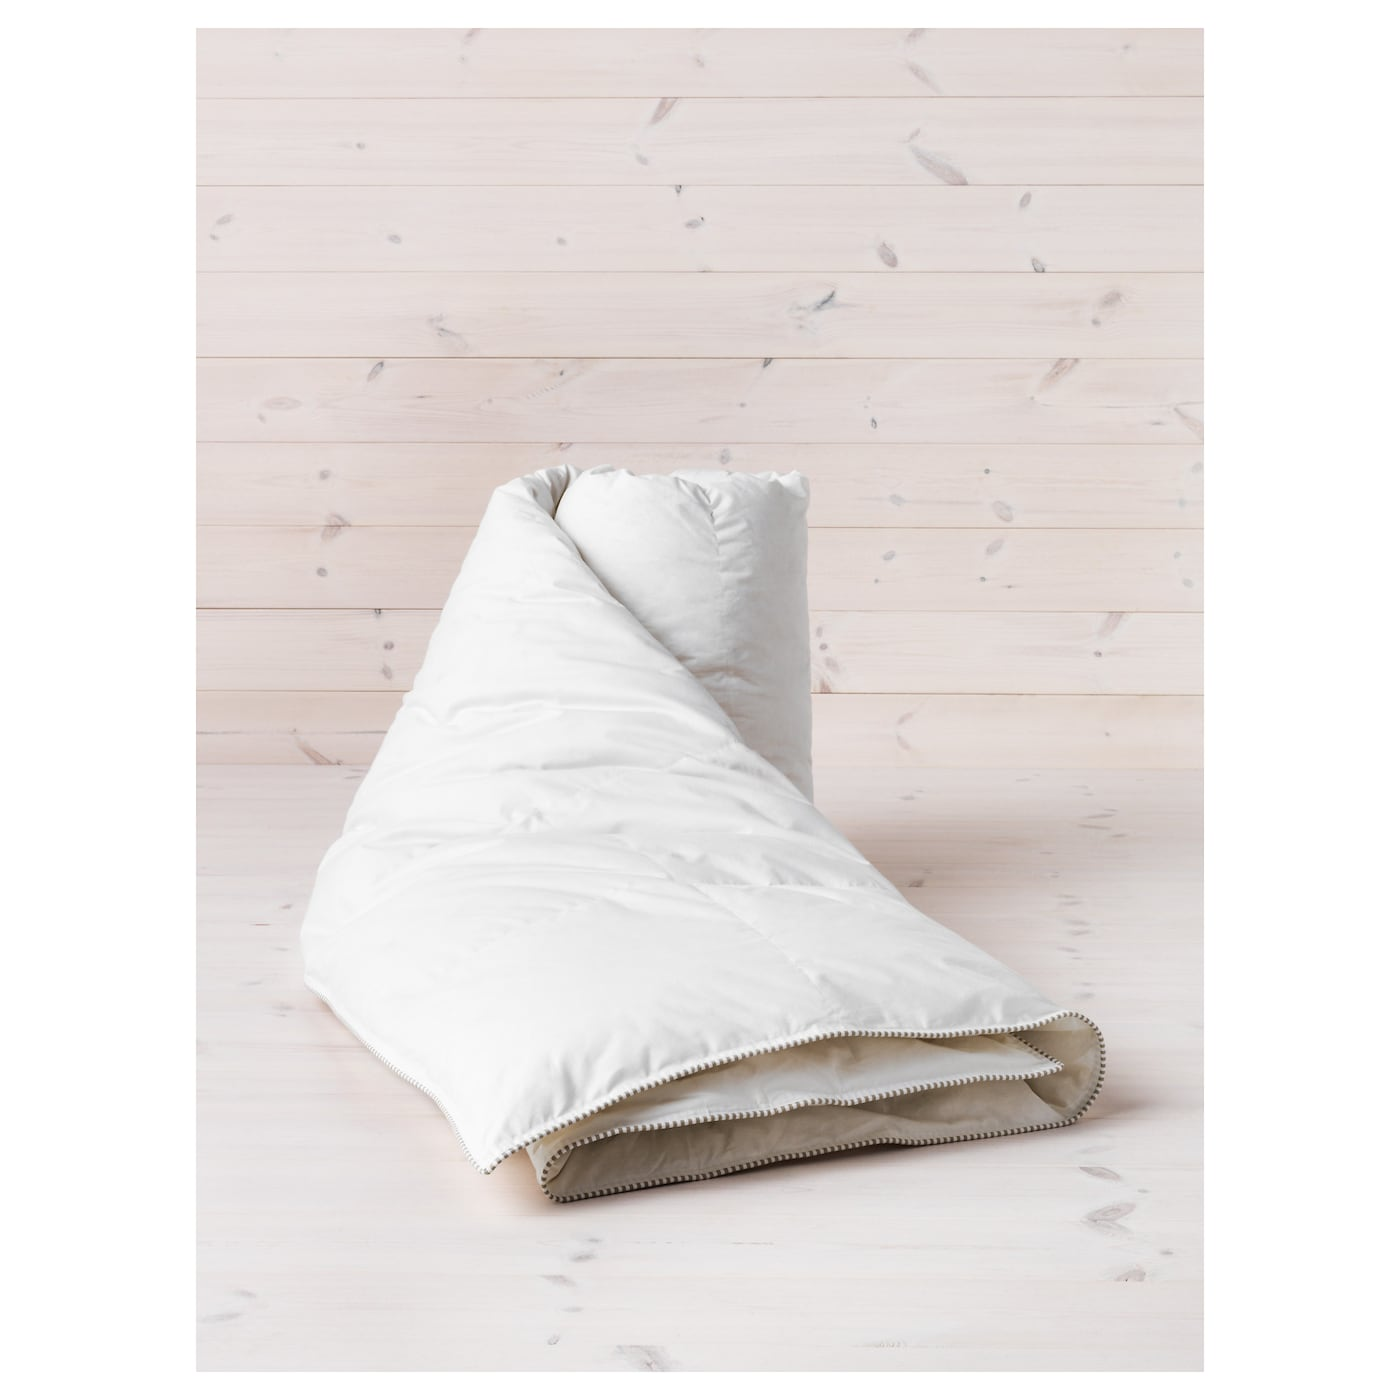 IKEA SÖTVEDEL duvet, 12 TOG An extra warm quilt in soft cotton, filled with duck down and feathers.